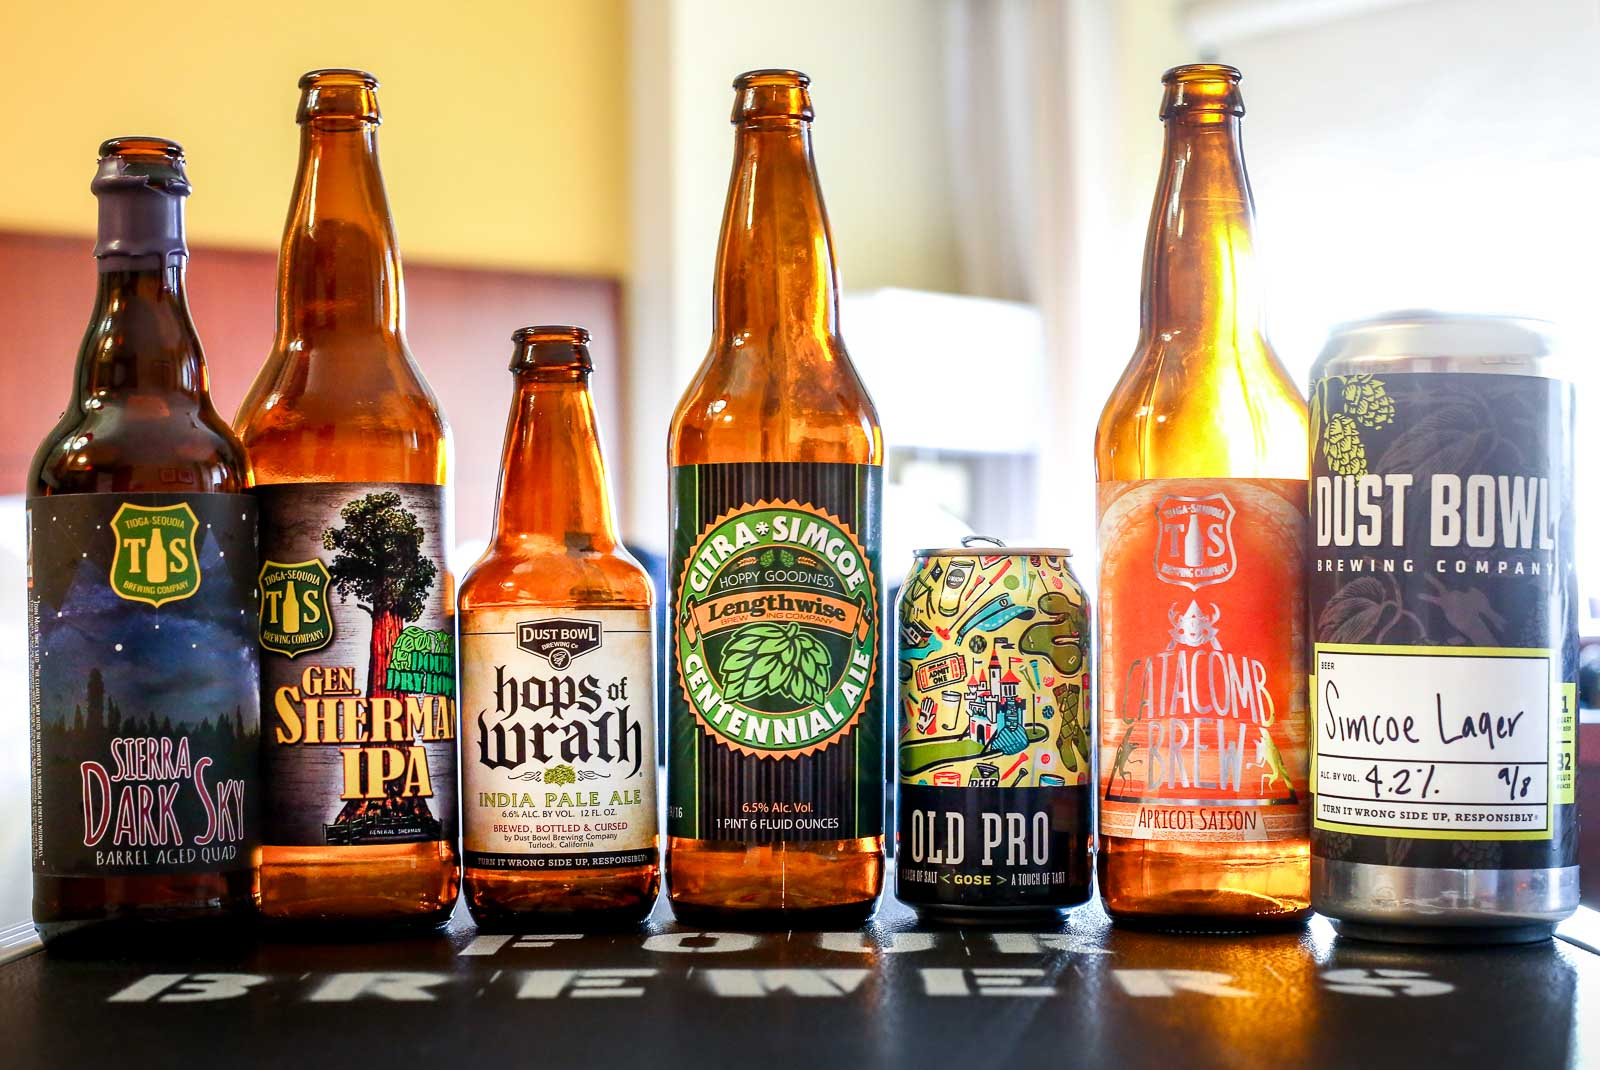 Beers from California